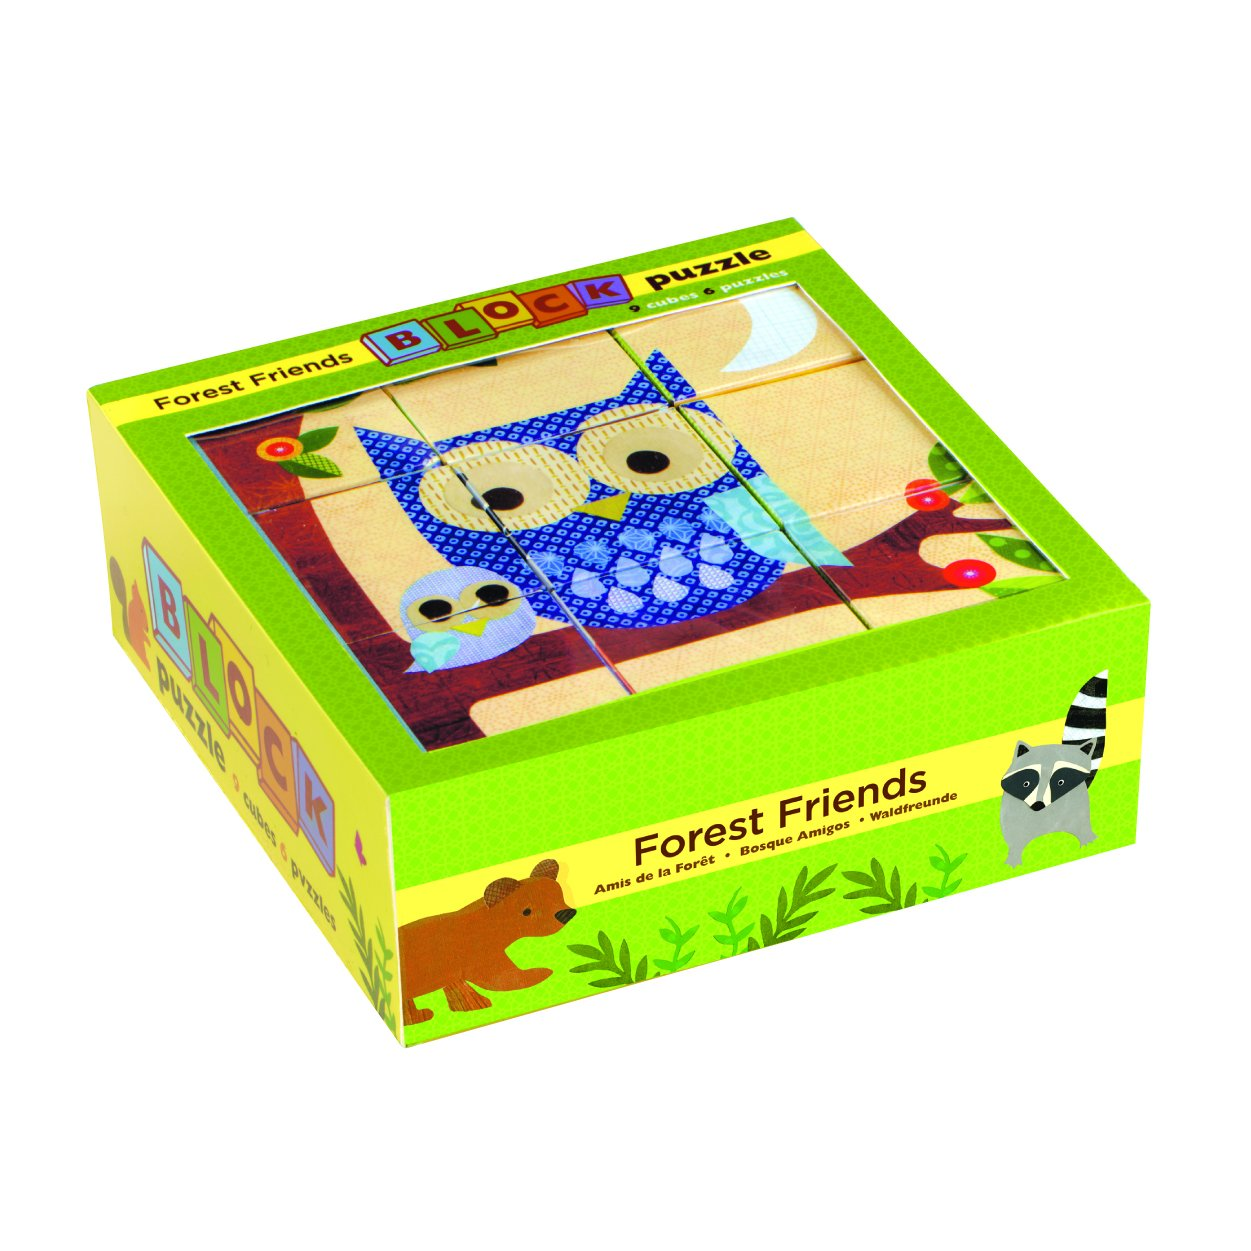 Mudpuppy Block Puzzle Mudpuppy Puzzles Forest Friends at Little Earth Nest Eco Shop